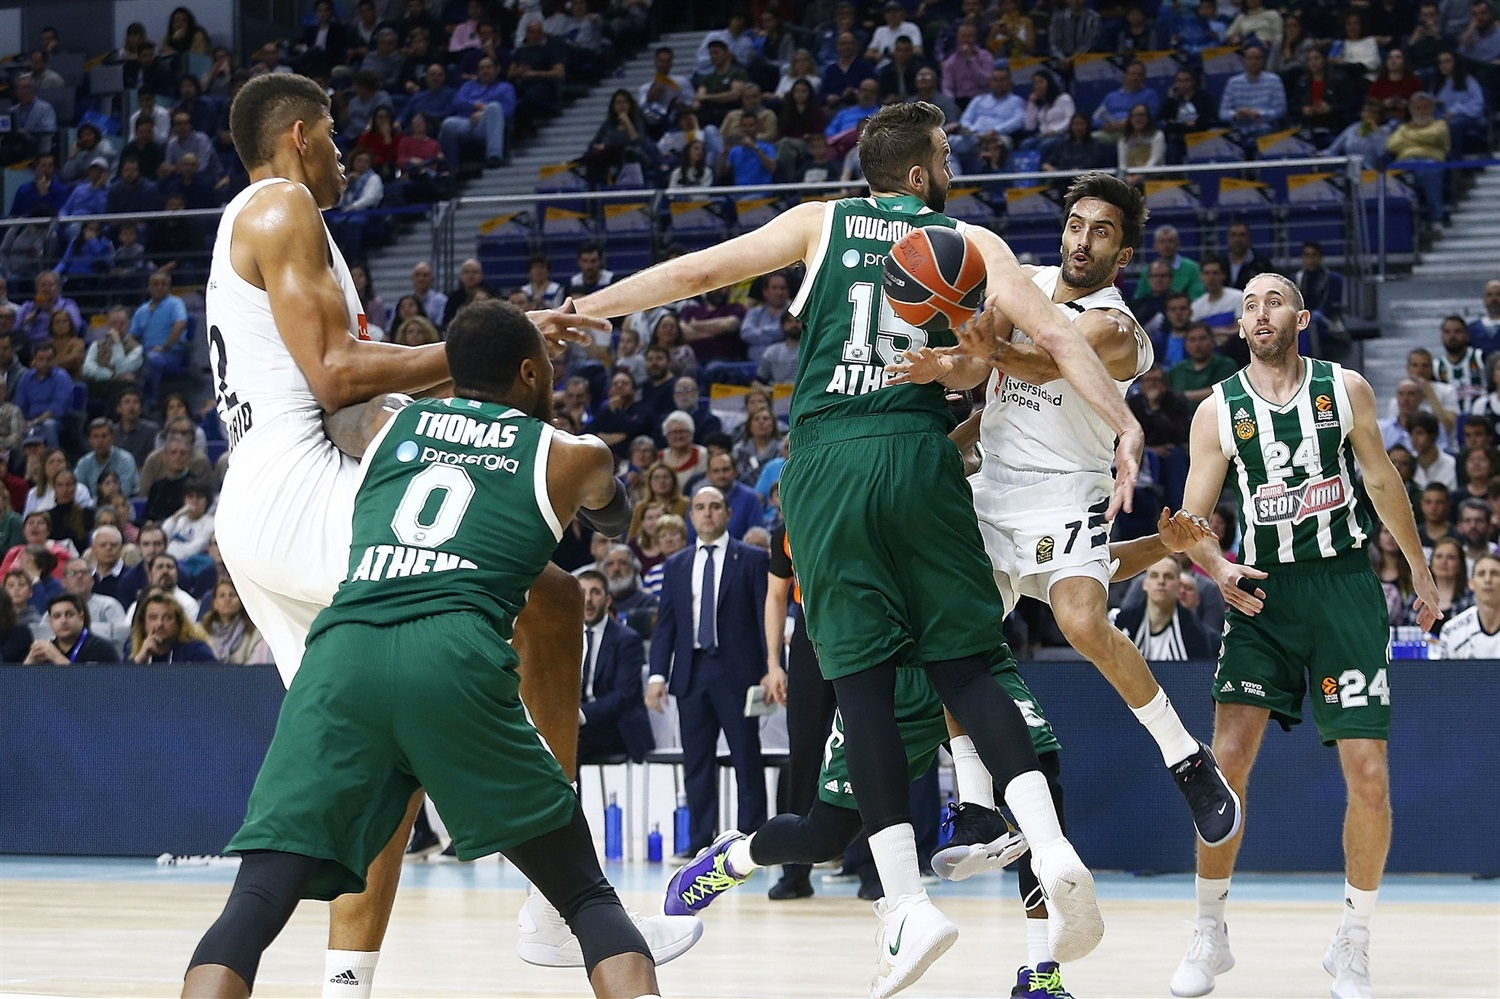 Facundo Campazzo - Real Madrid - EB18_9lvo7hoqx6oy3auo